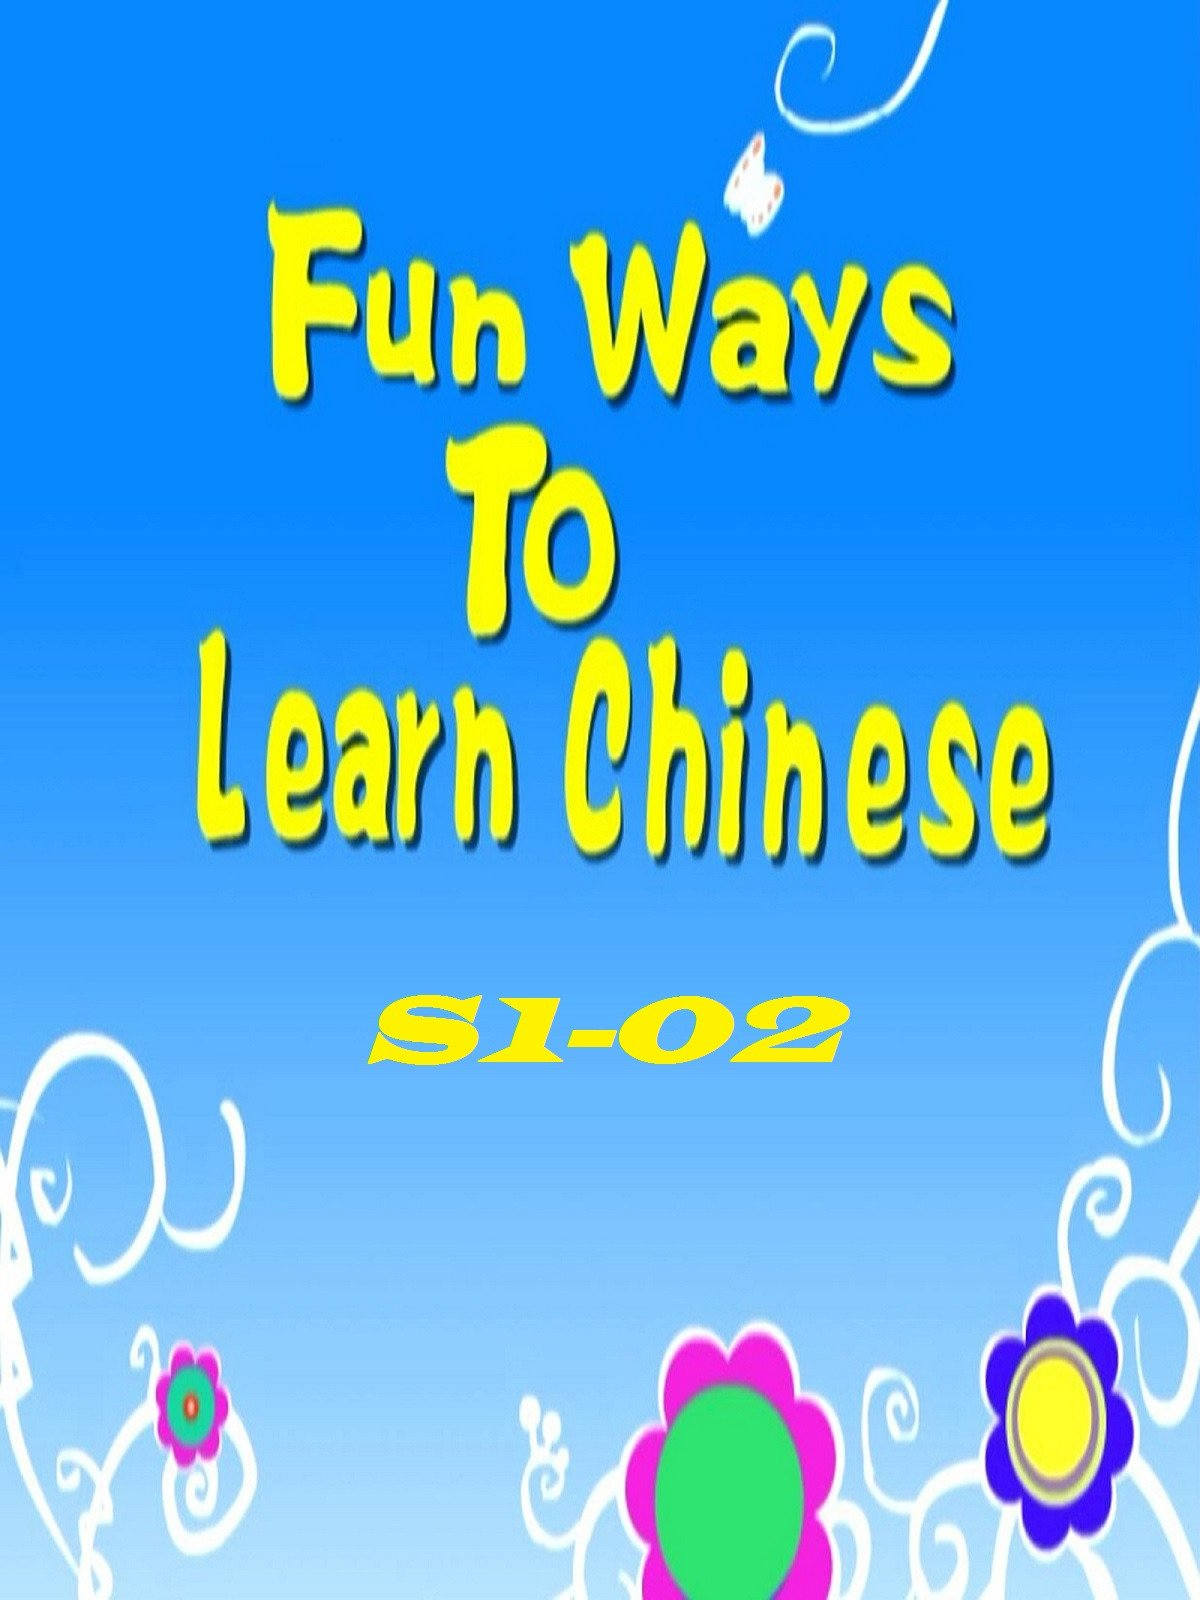 Fun Way To Learn Chinese-S1-02 on Amazon Prime Video UK